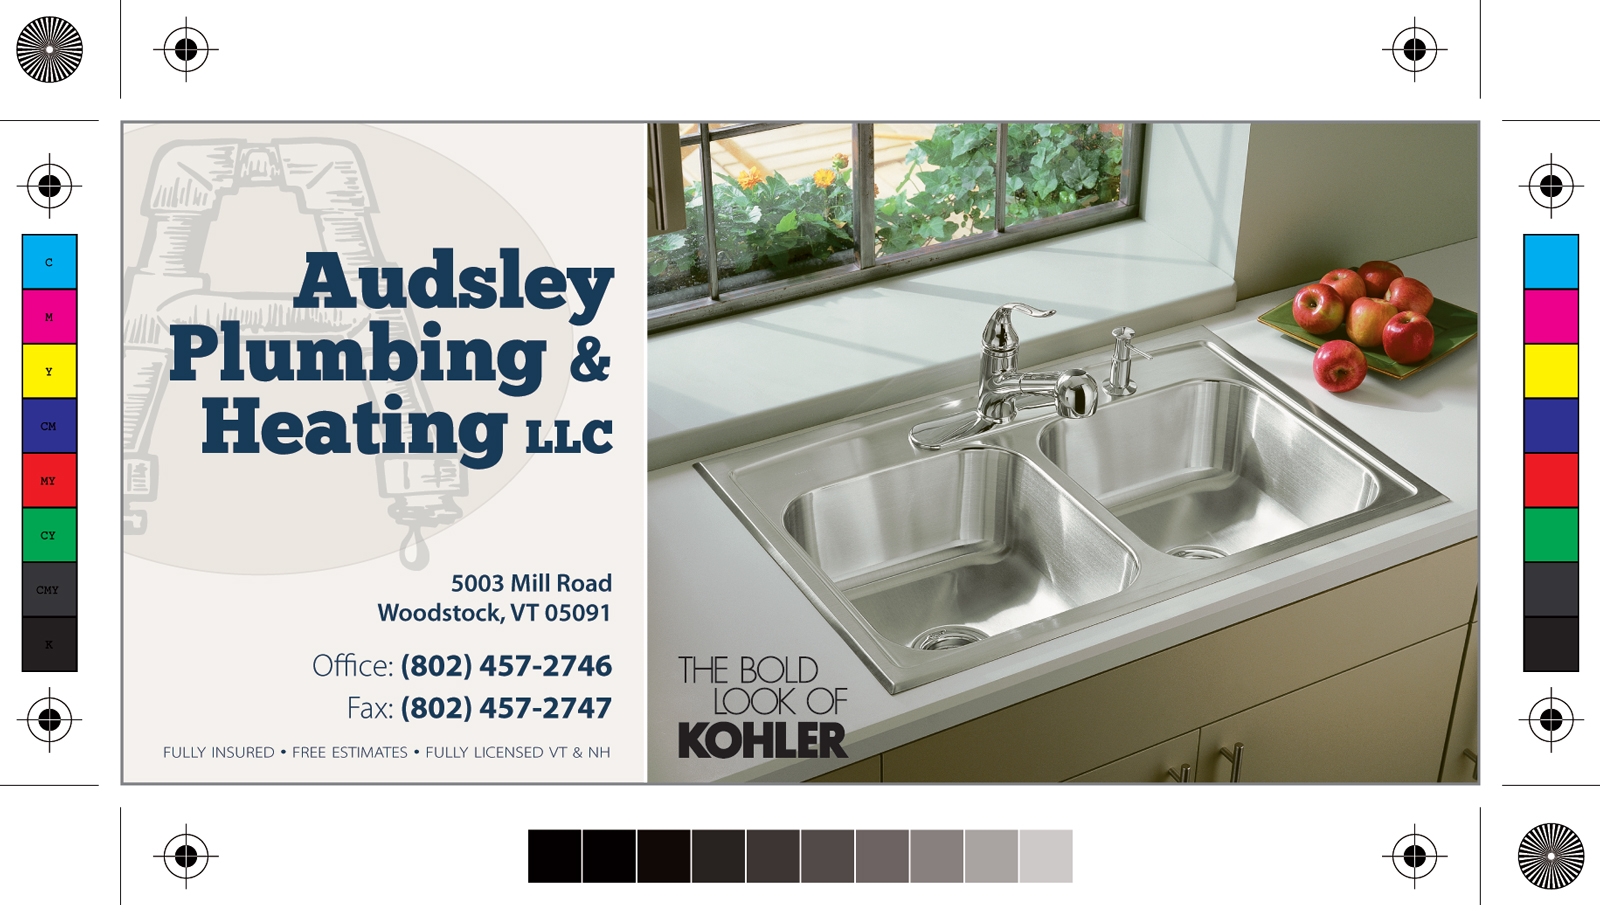 Print ad for Audsley Plumbing & Heating